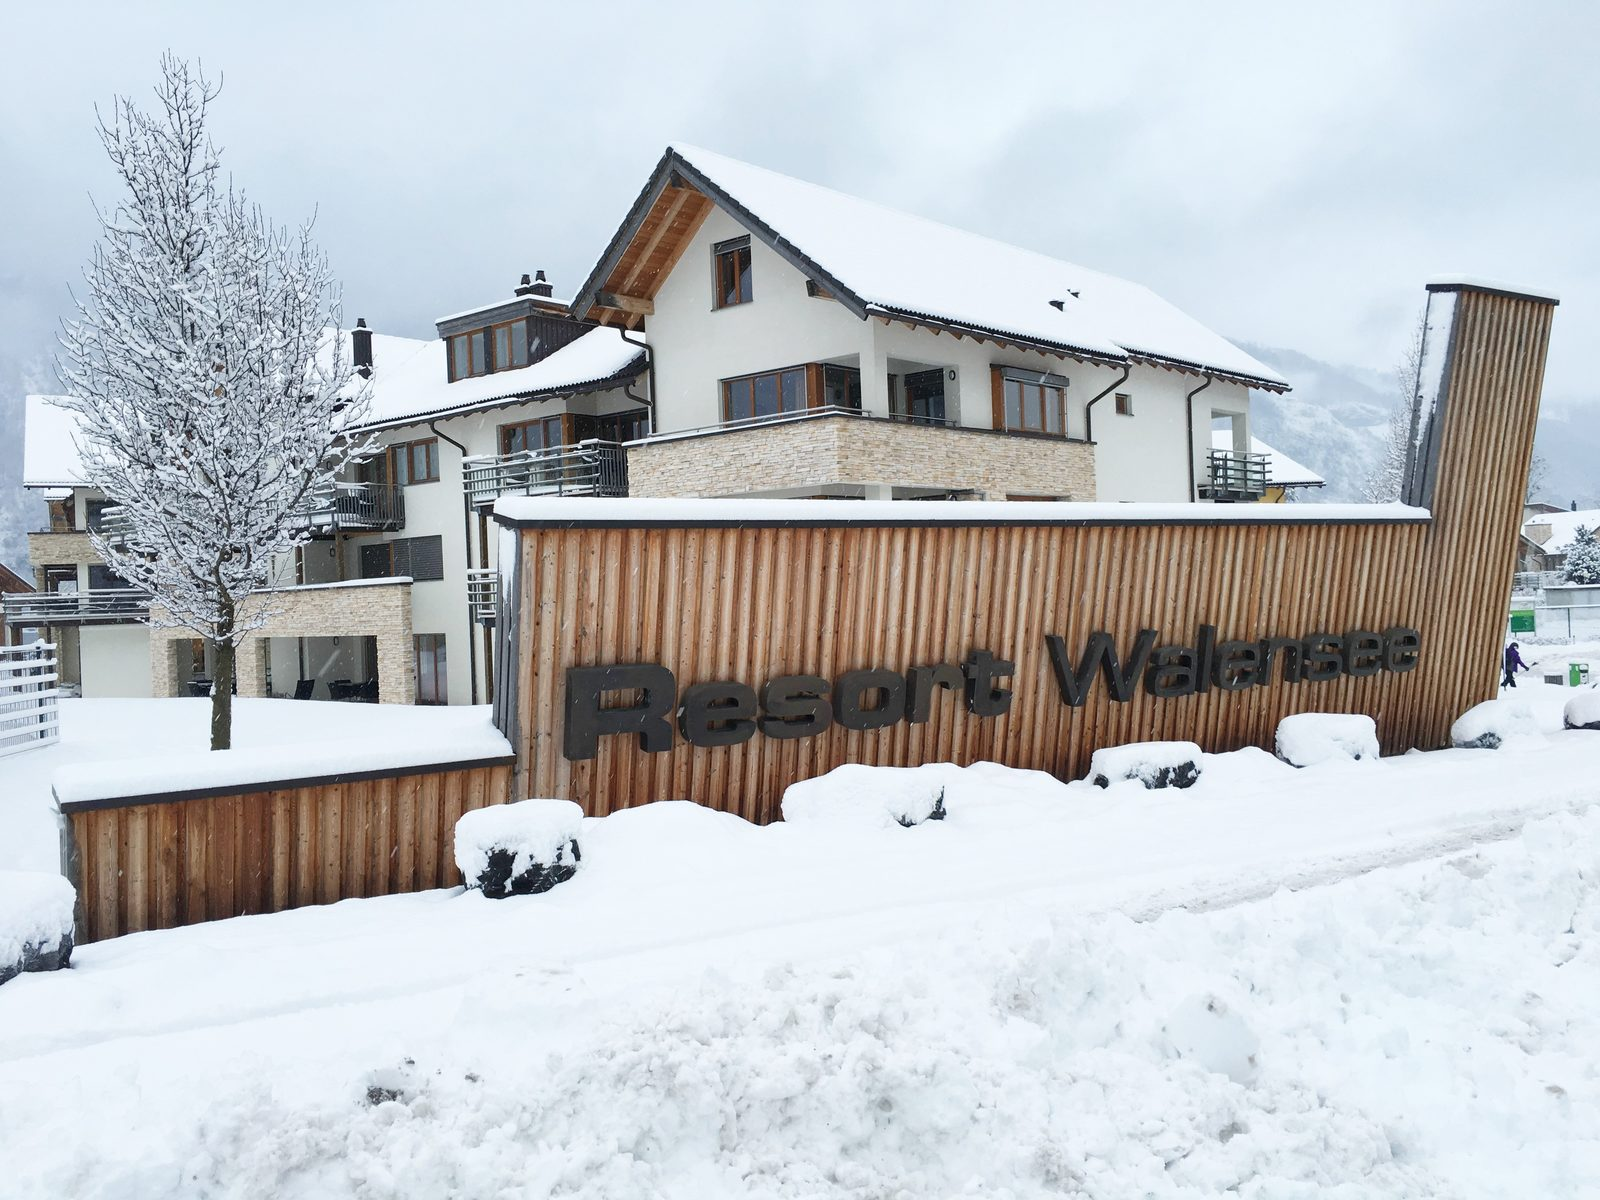 Resort Walensee, on the foot of the Flumserberg Switzerland, is the ideal winter sports location for the whole family.